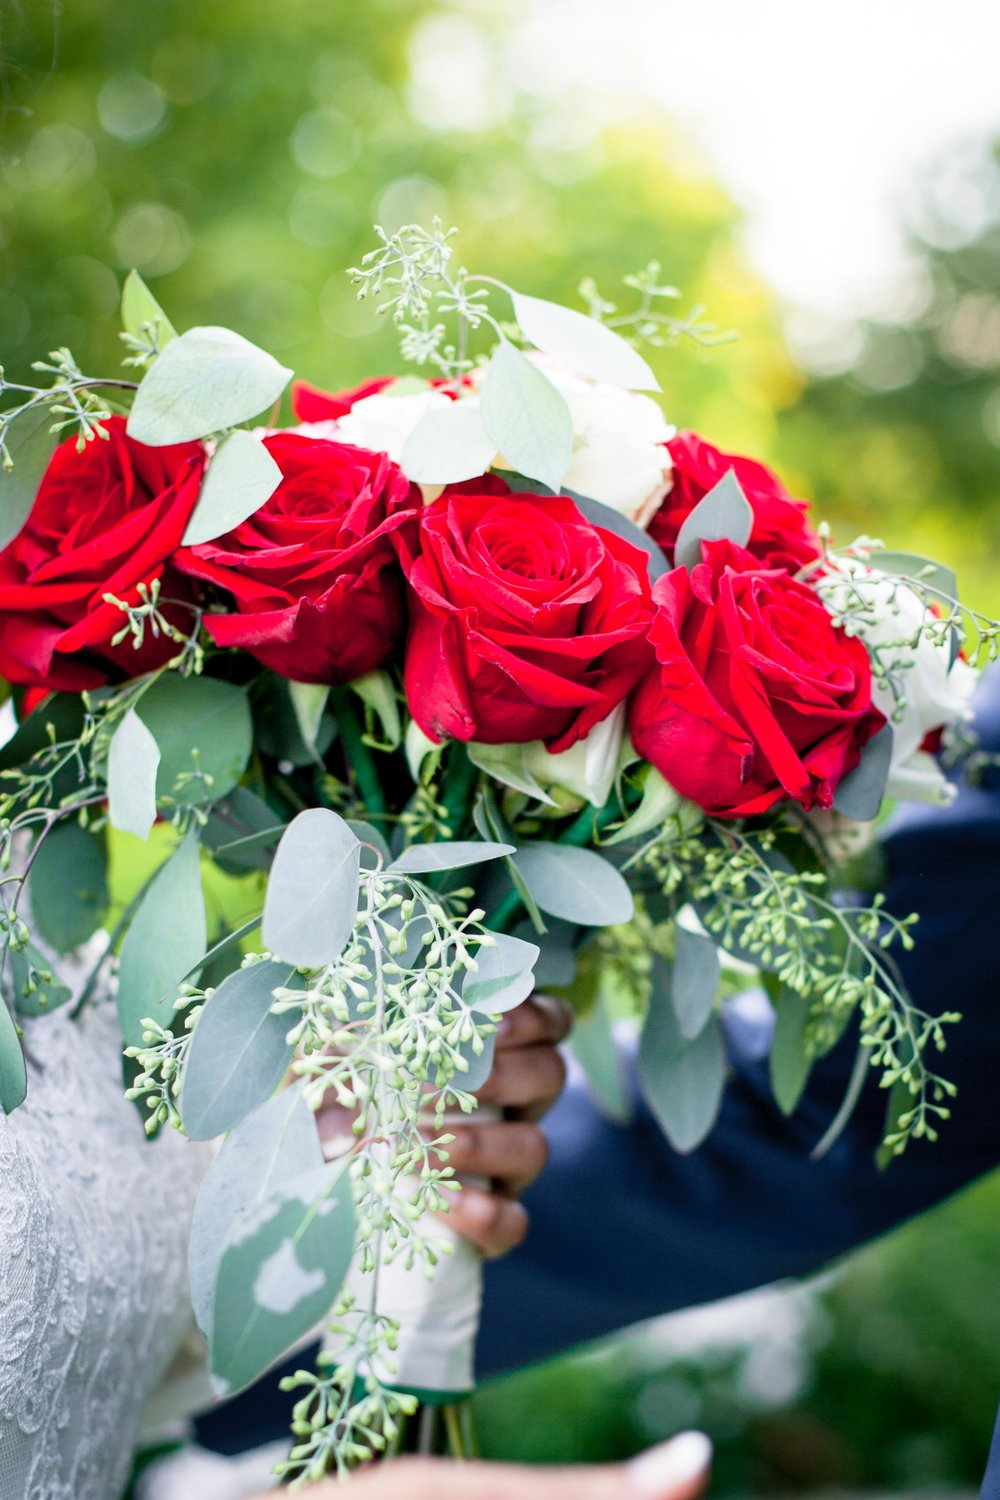 Scarborough Wedding 2018 Somali Eritrean Habesha African Abu Dhabi Maroon Blush Bouquet Scarborough Convention Centre Sultana's Wedding Decor Photographer wedding toronto dreamy Muslim Islamic Wedding bride UAE Ontario Canada Karimah Gheddai Photography Sultana's Wedding Decor Red